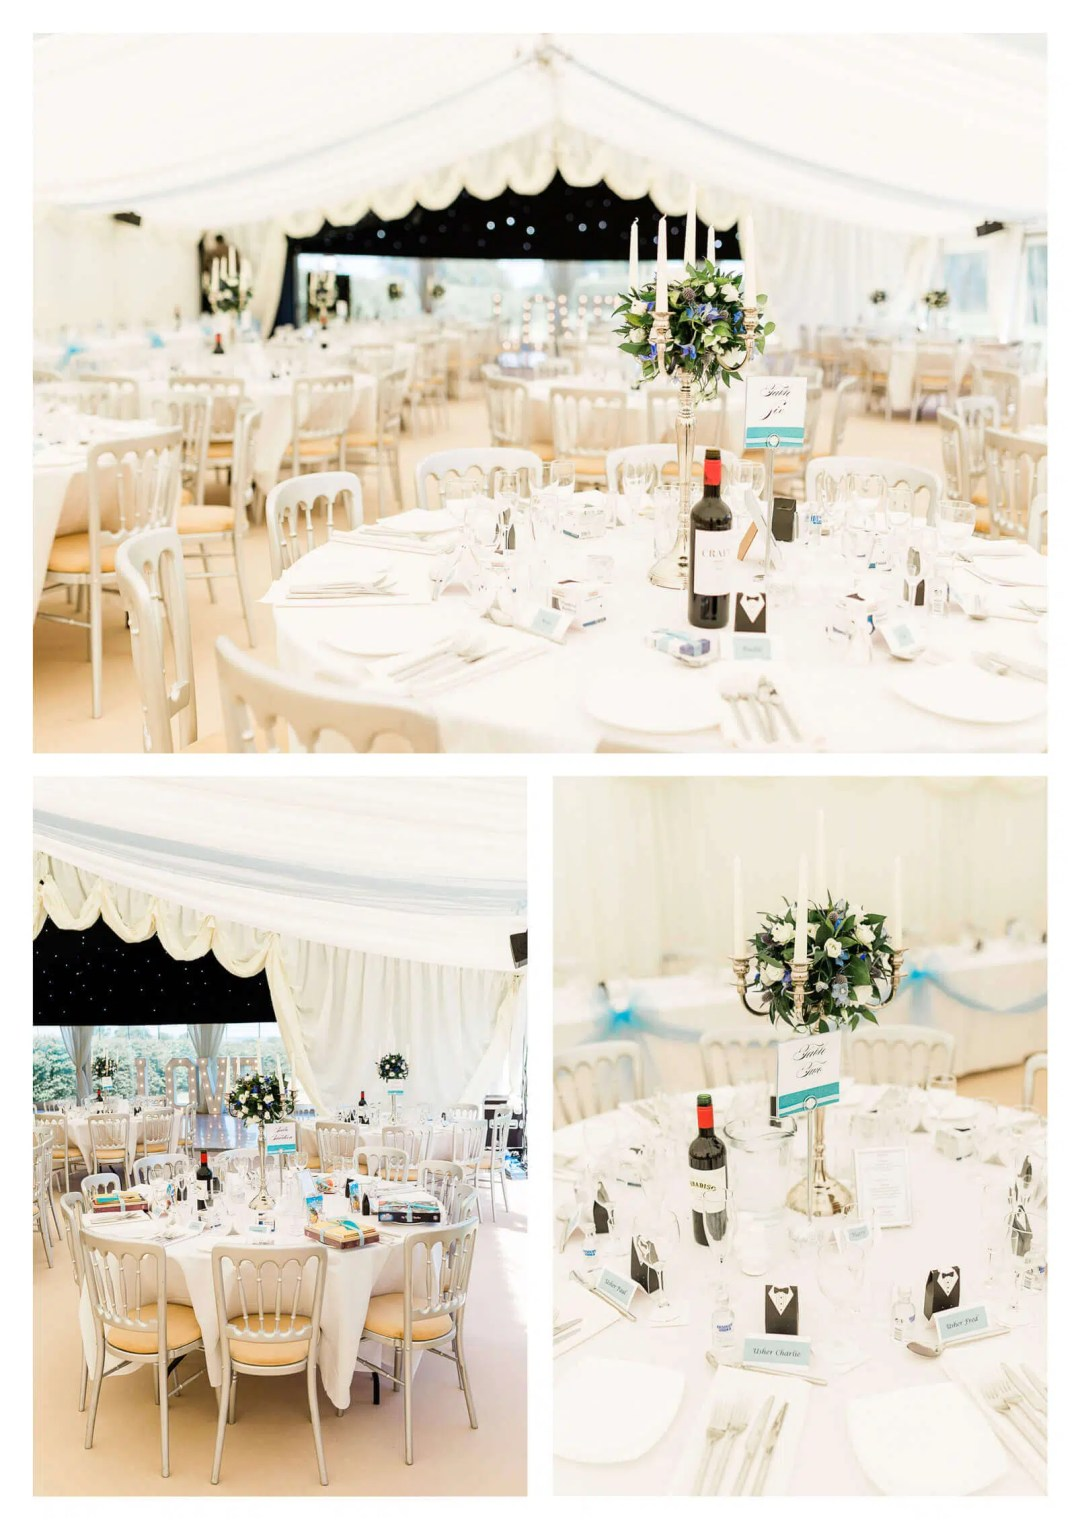 Zinnia Gardens marquee wedding venue in Surrey | Surrey photographer